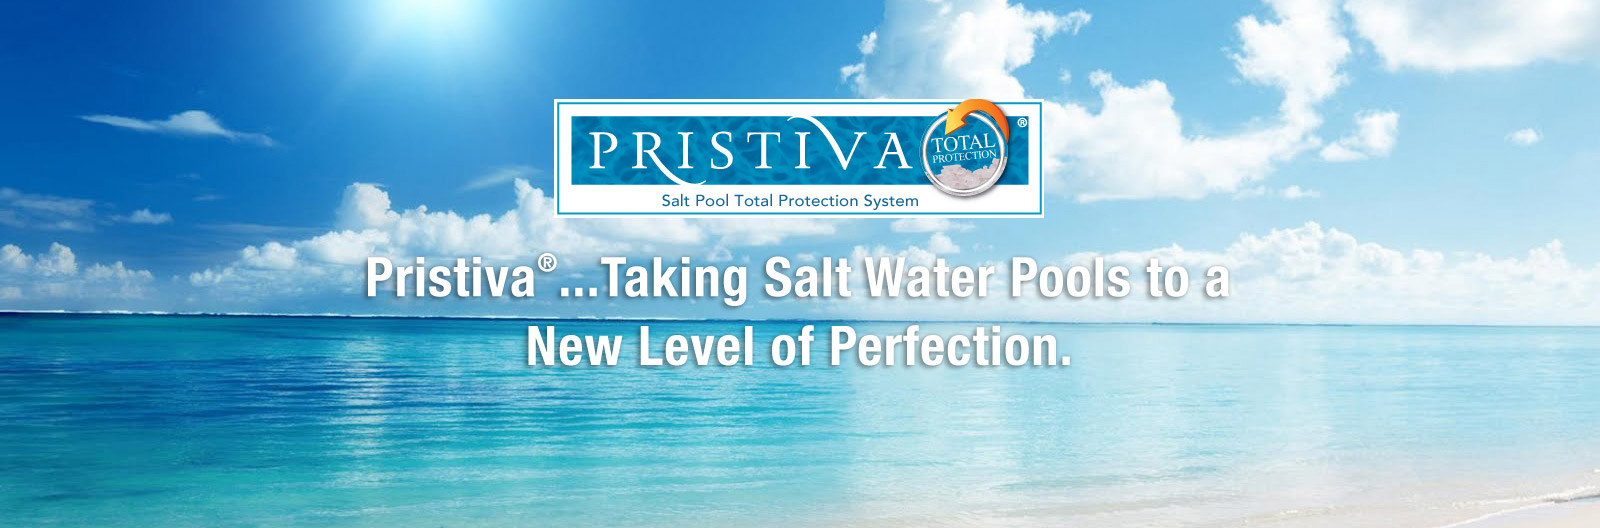 Pristiva Salt Water Pools